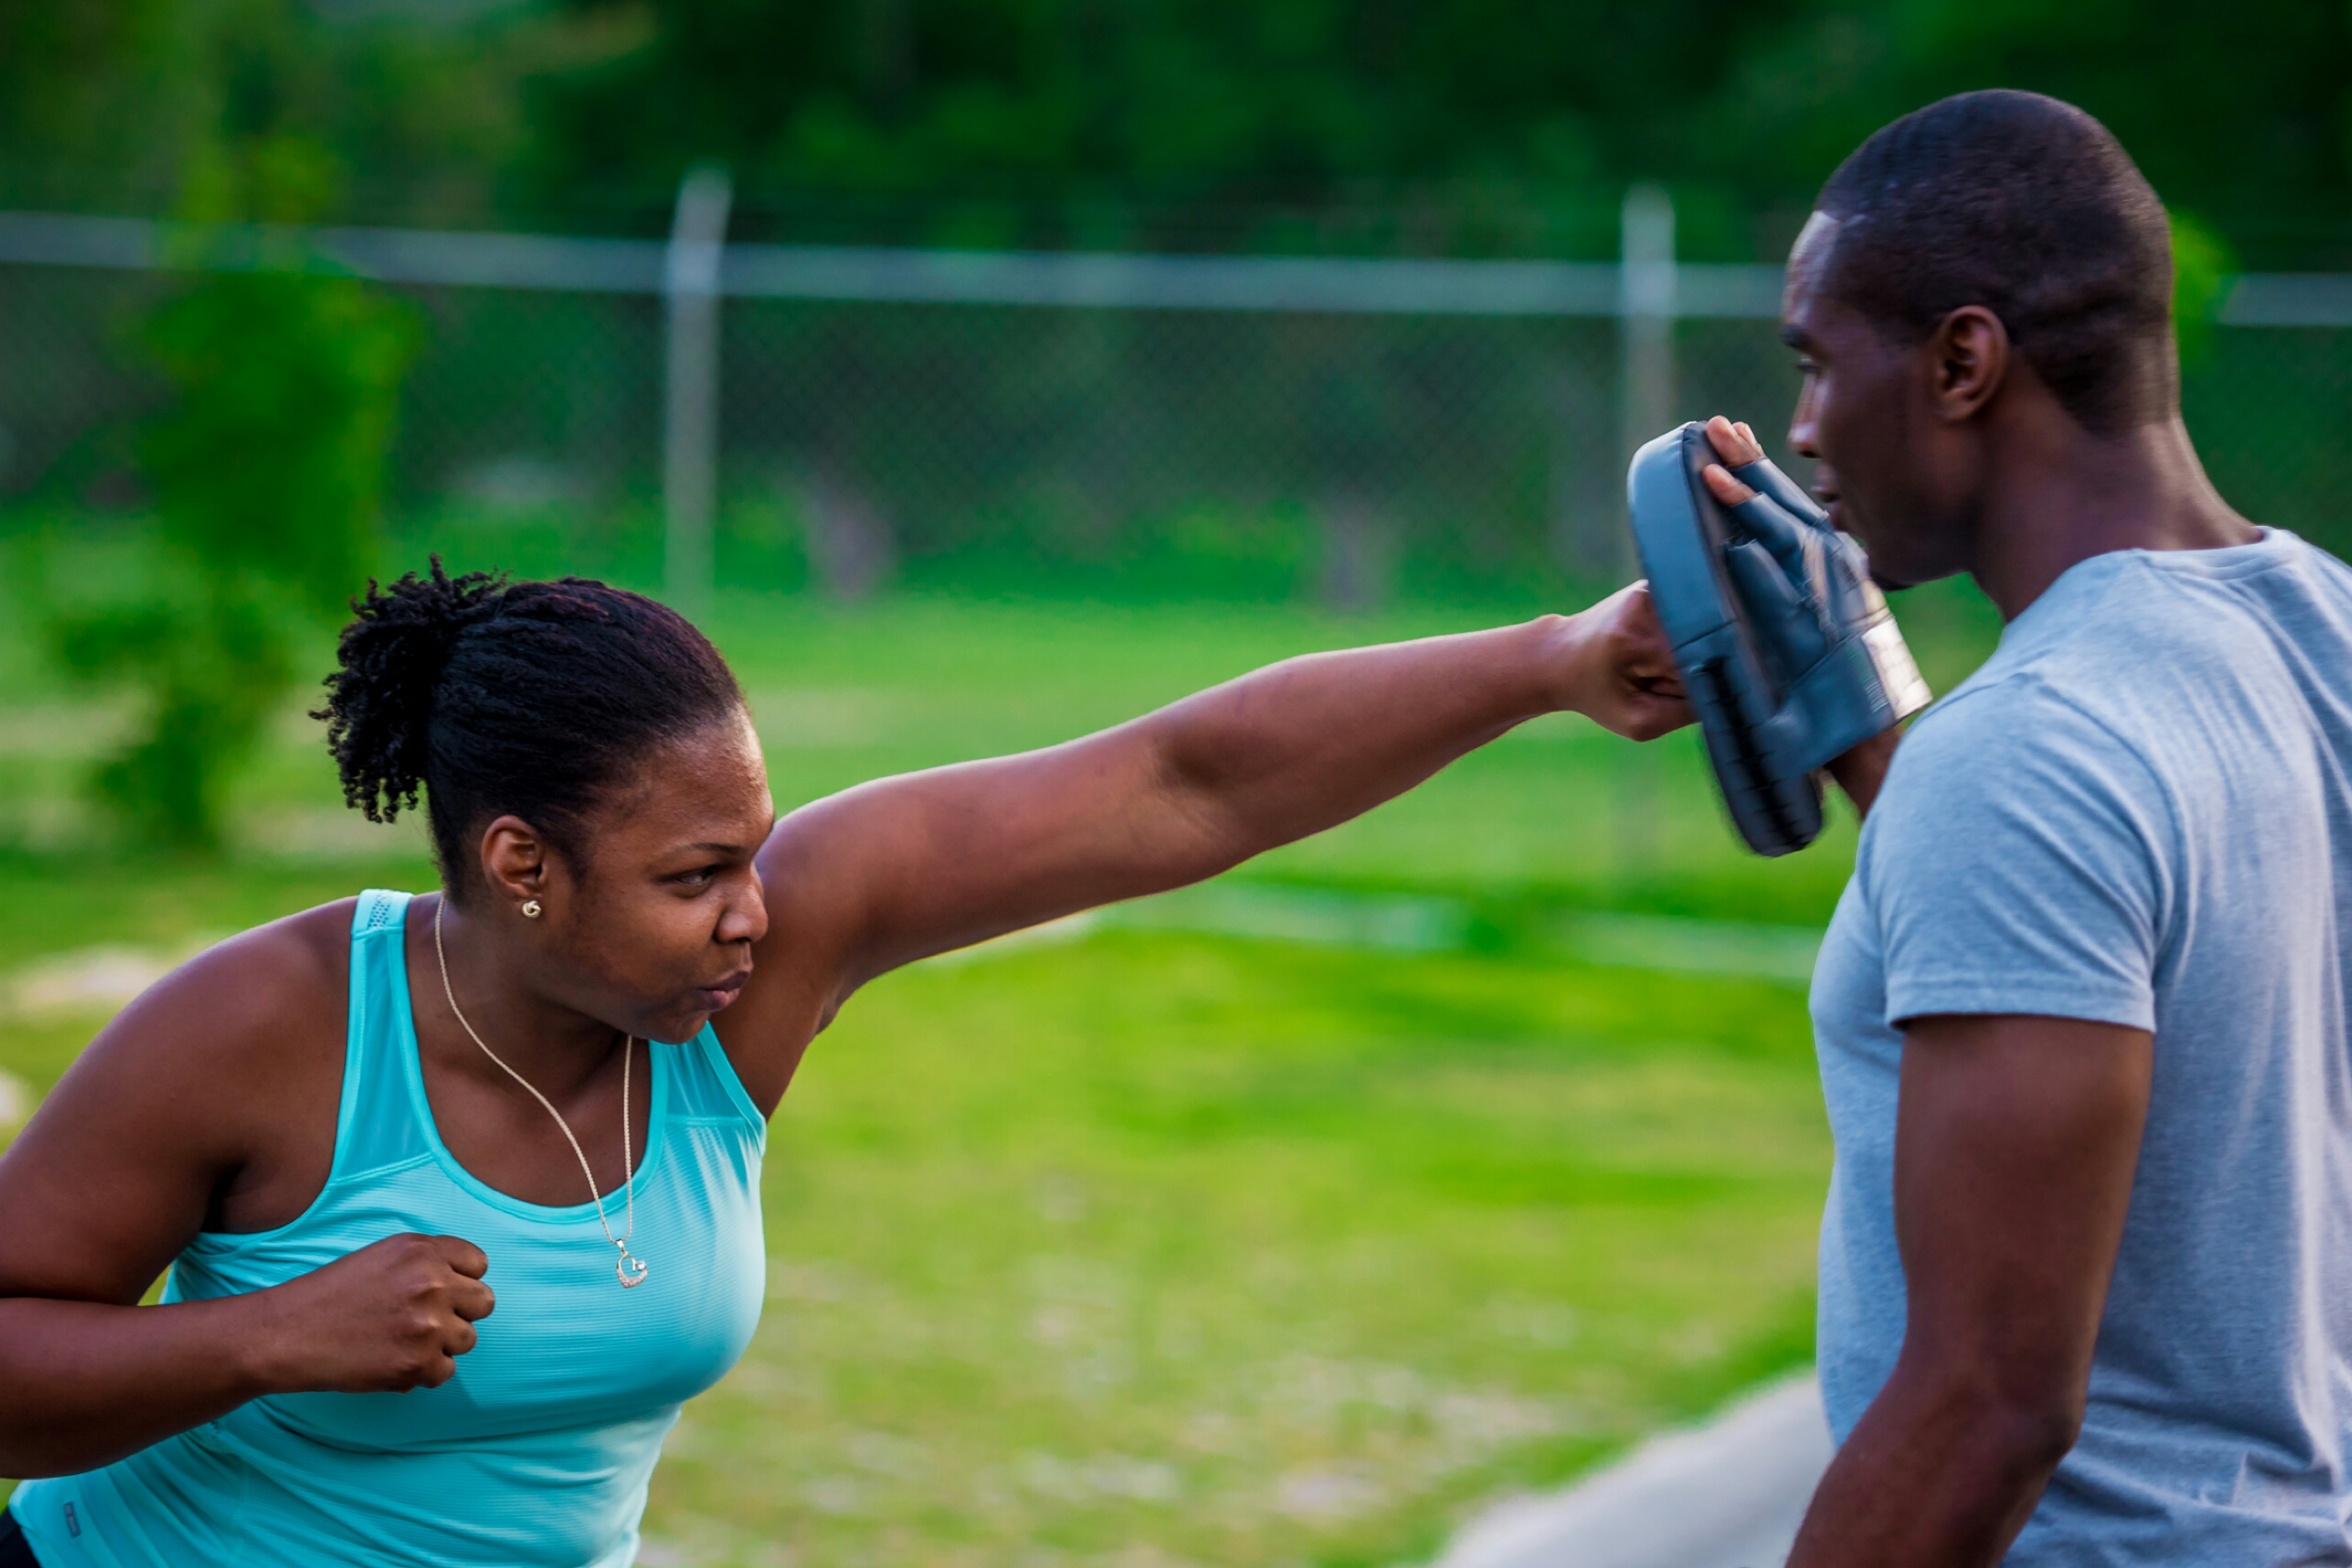 Personal Fitness Coaching - O'Shane Bryant Fitness